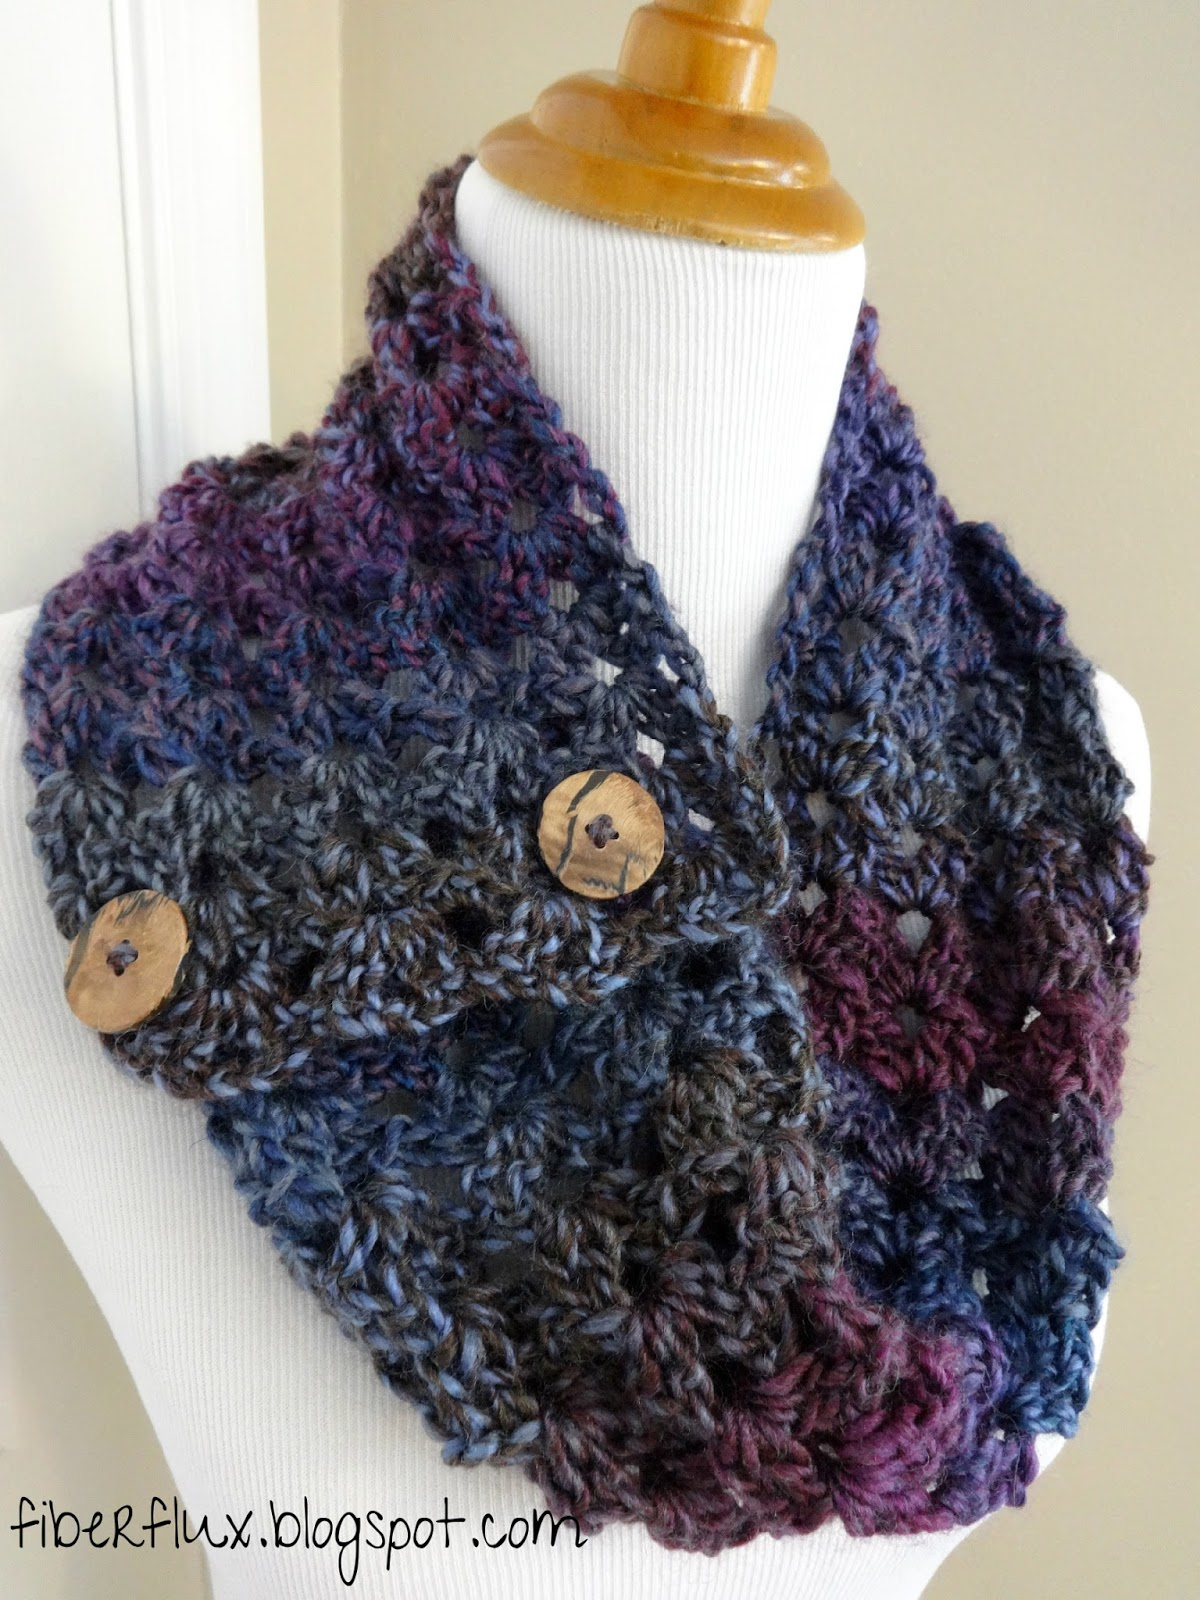 Free Crochet Patterns Cowls : Fiber Flux: Free Crochet Pattern...Estelle Button Cowl!